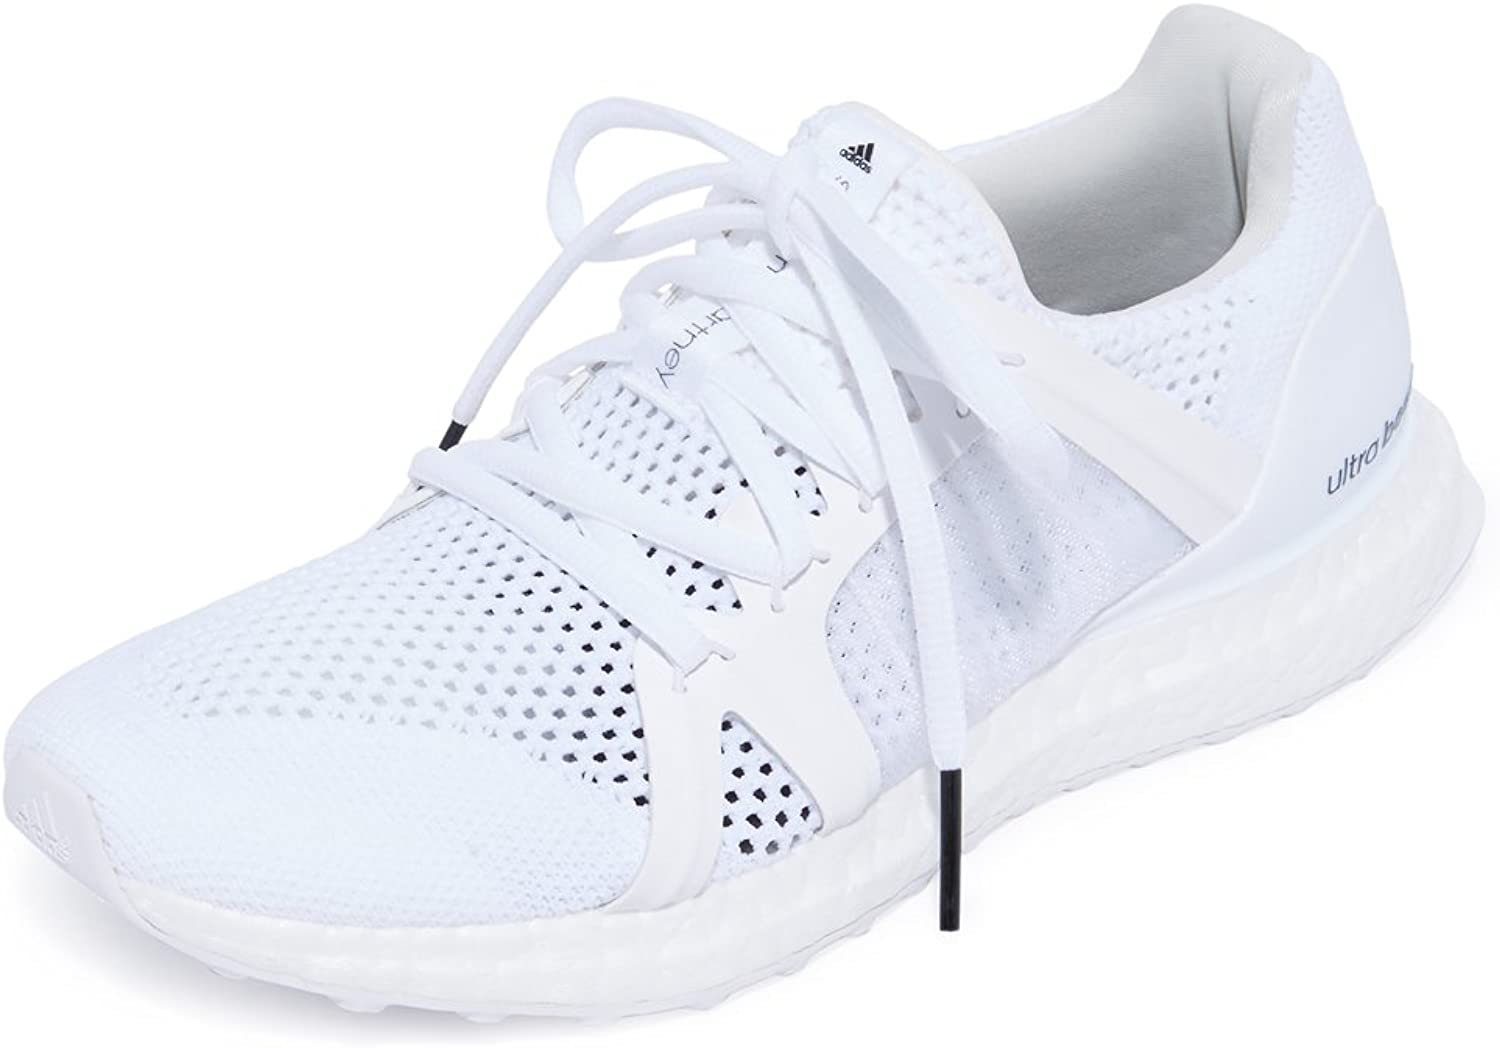 Adidas by Stella McCartney Women's Ultra Boost Sneakers